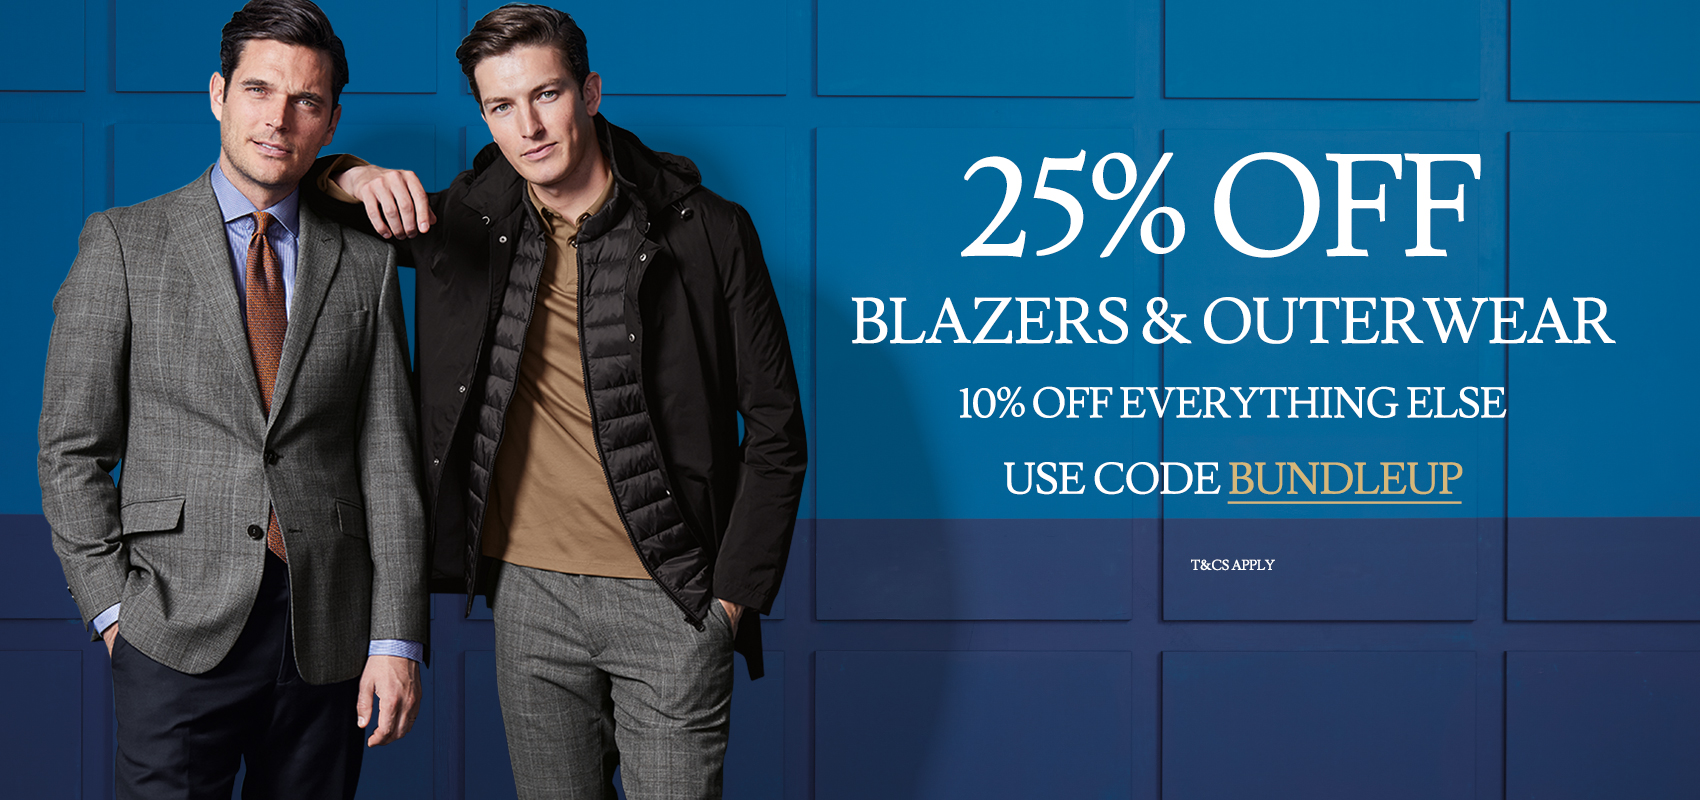 25% off blazers & outerwear and 10% off everything else use code BUNDLEUP